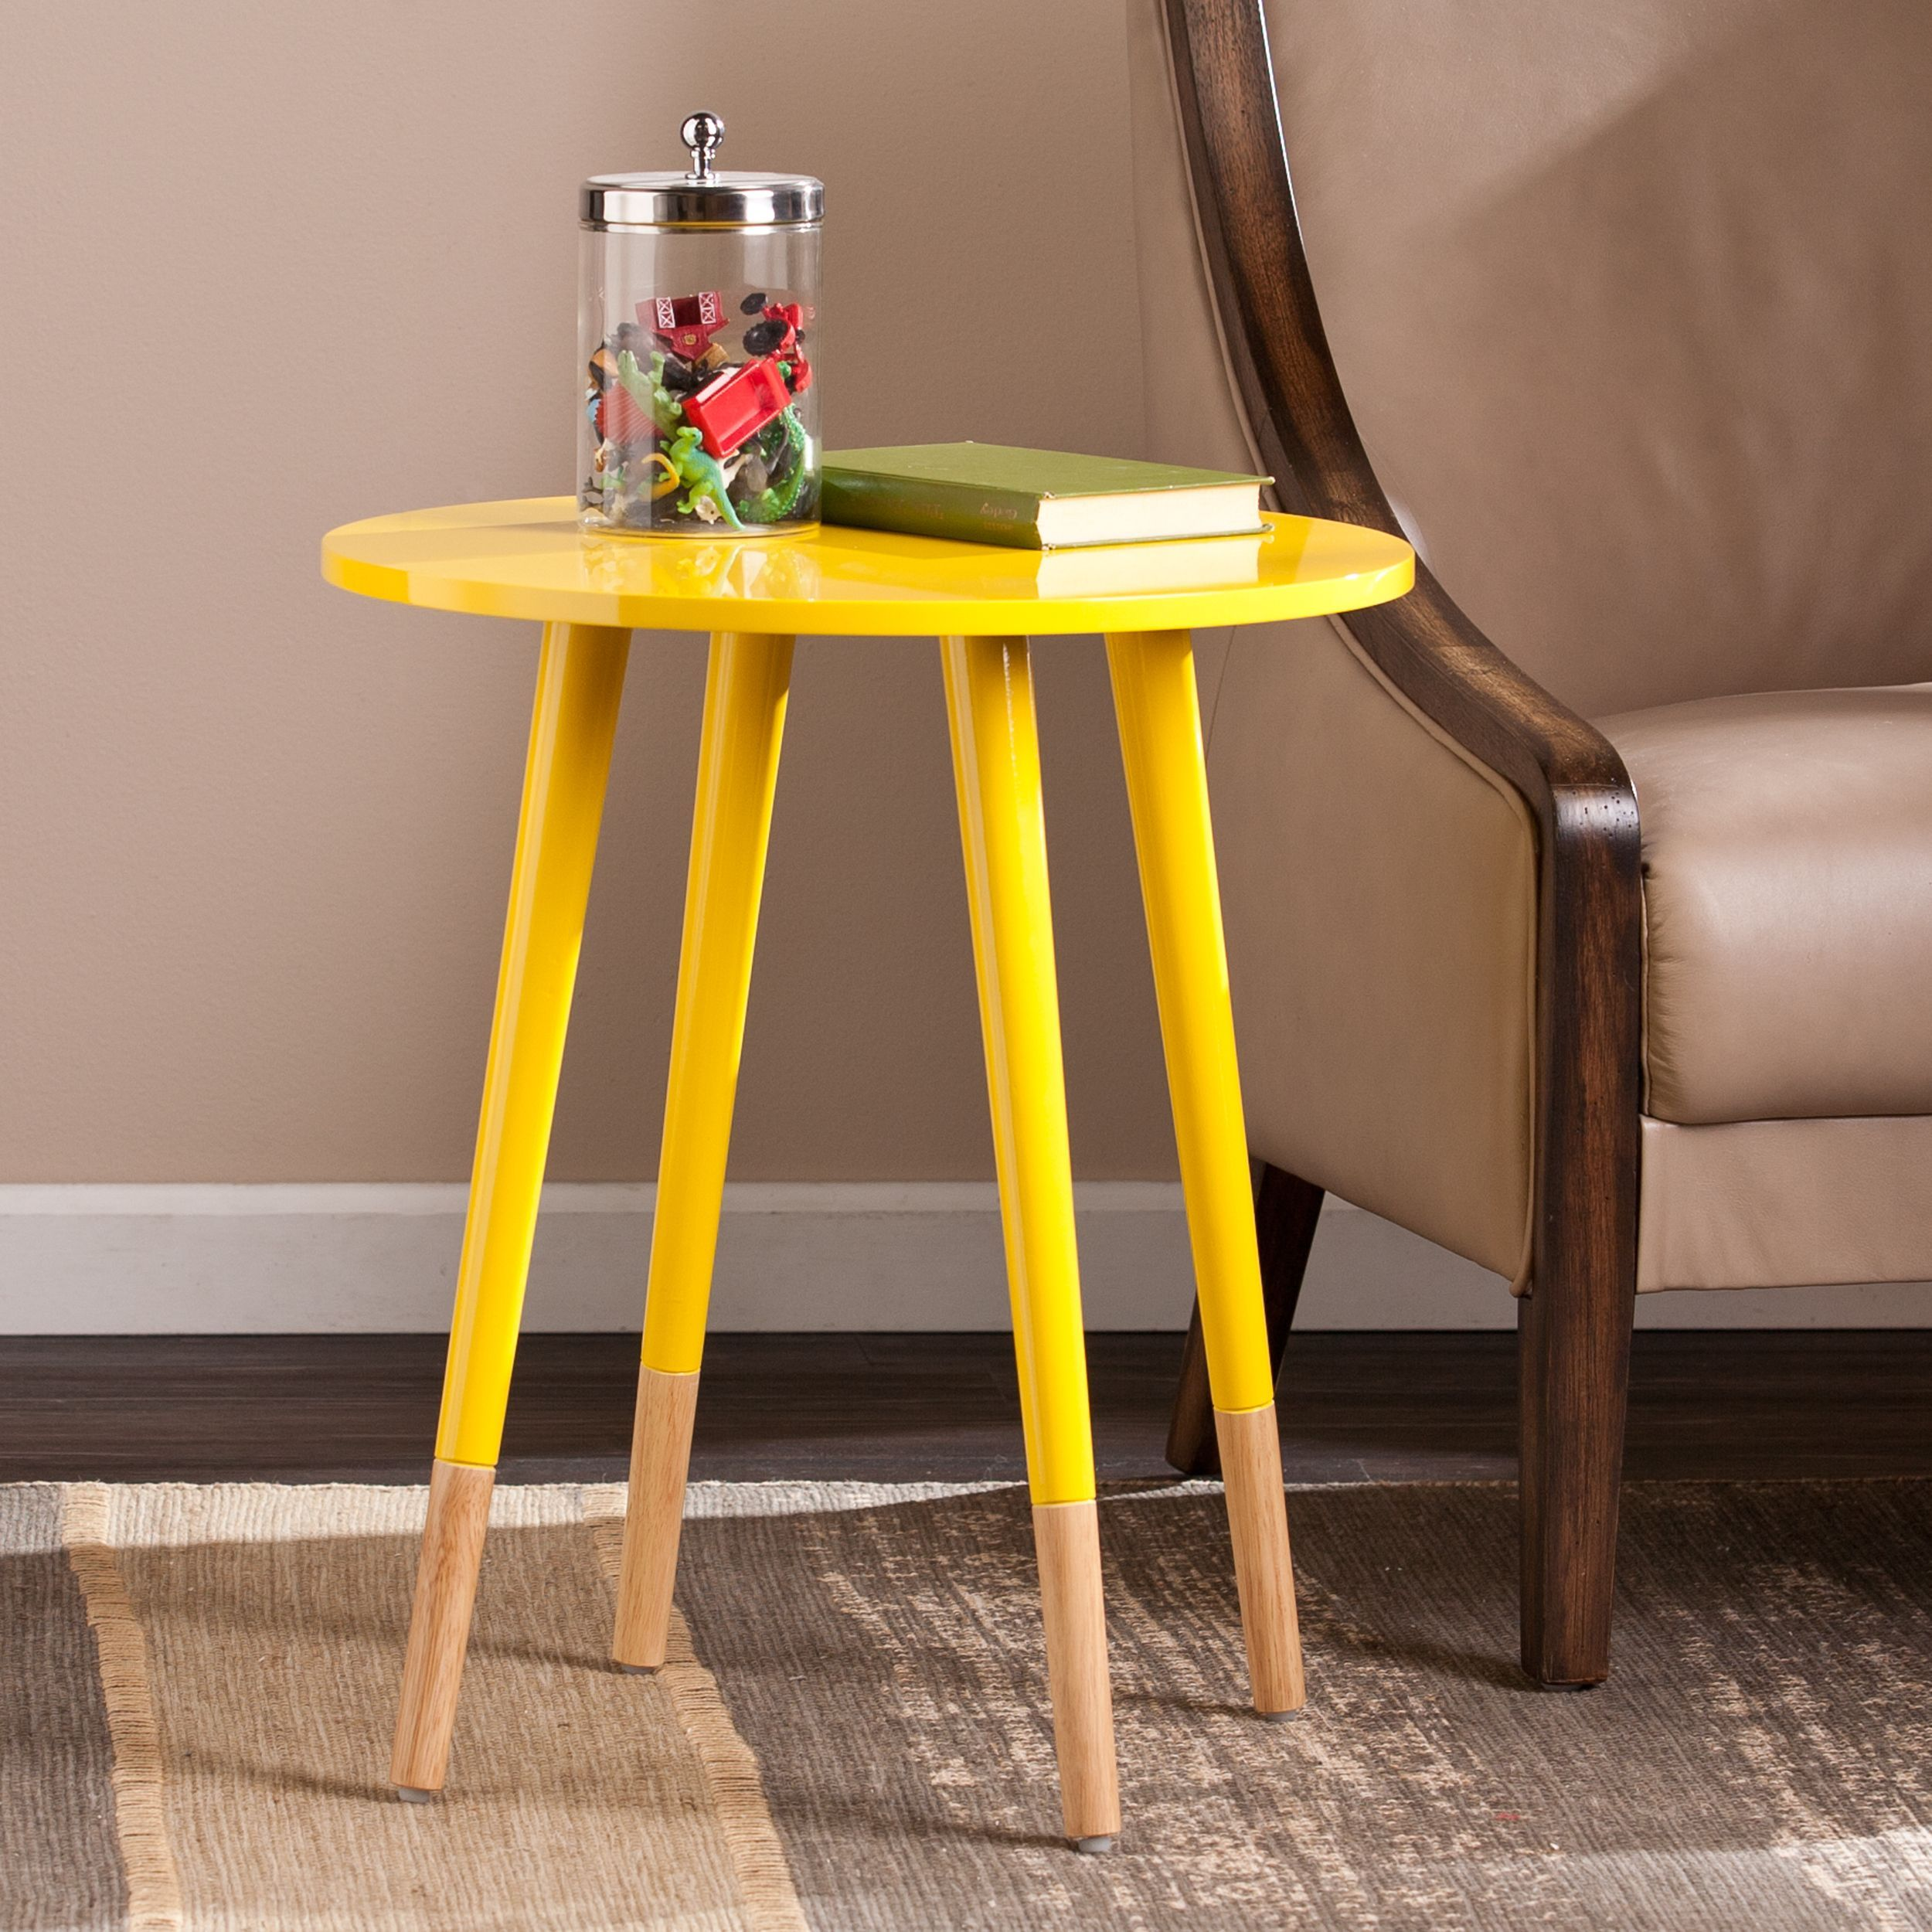 Harper Blvd Hinton Round Accent Table (OS6143CO), Yellow